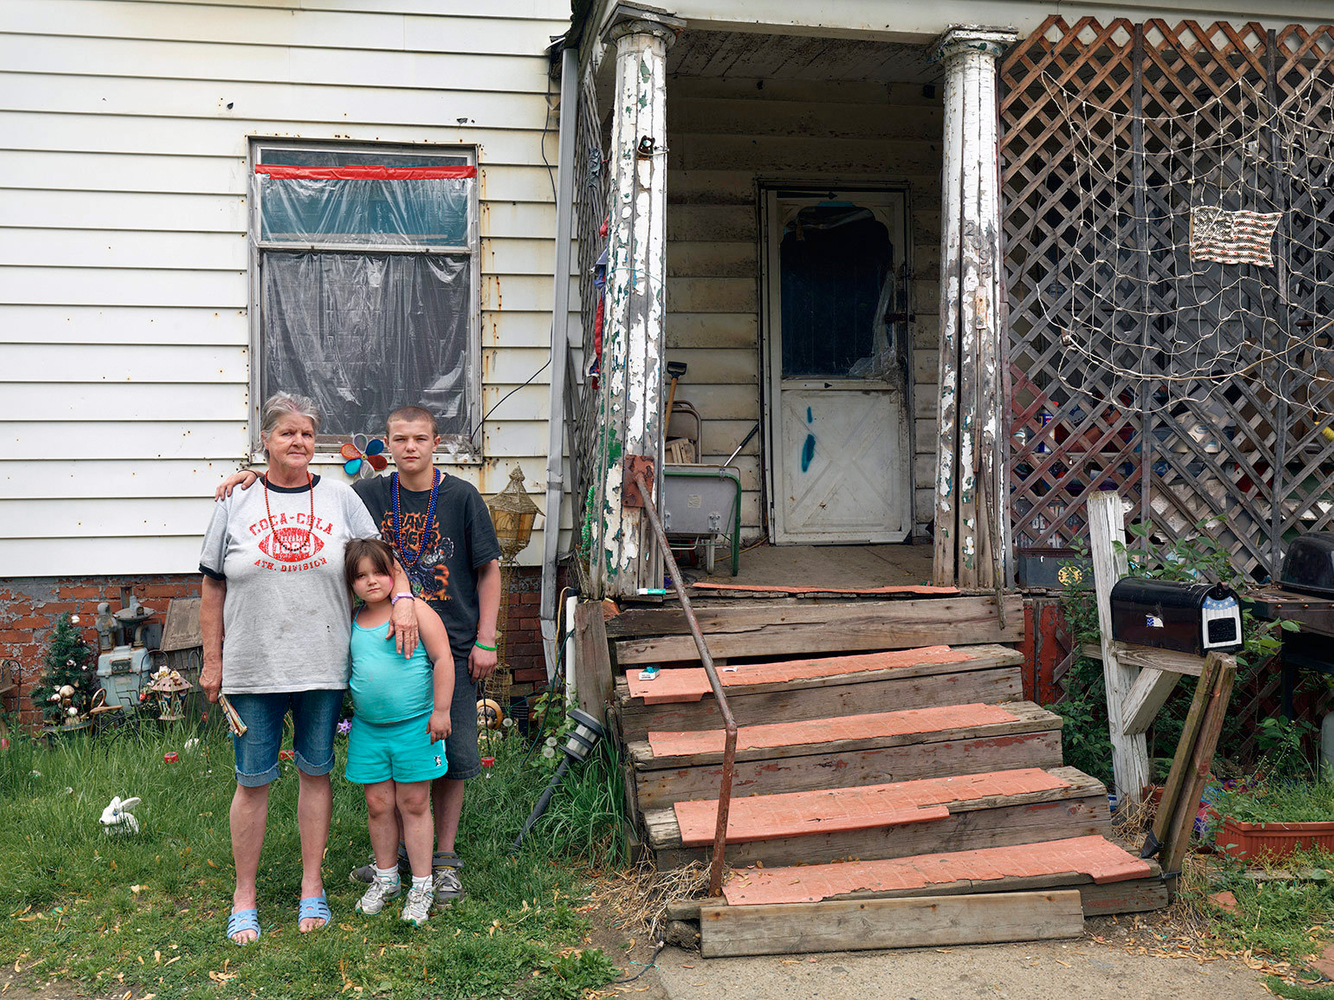 Bernadette with her grandchildren, Ferdinand Street, Mexicantown, Detroit 2012